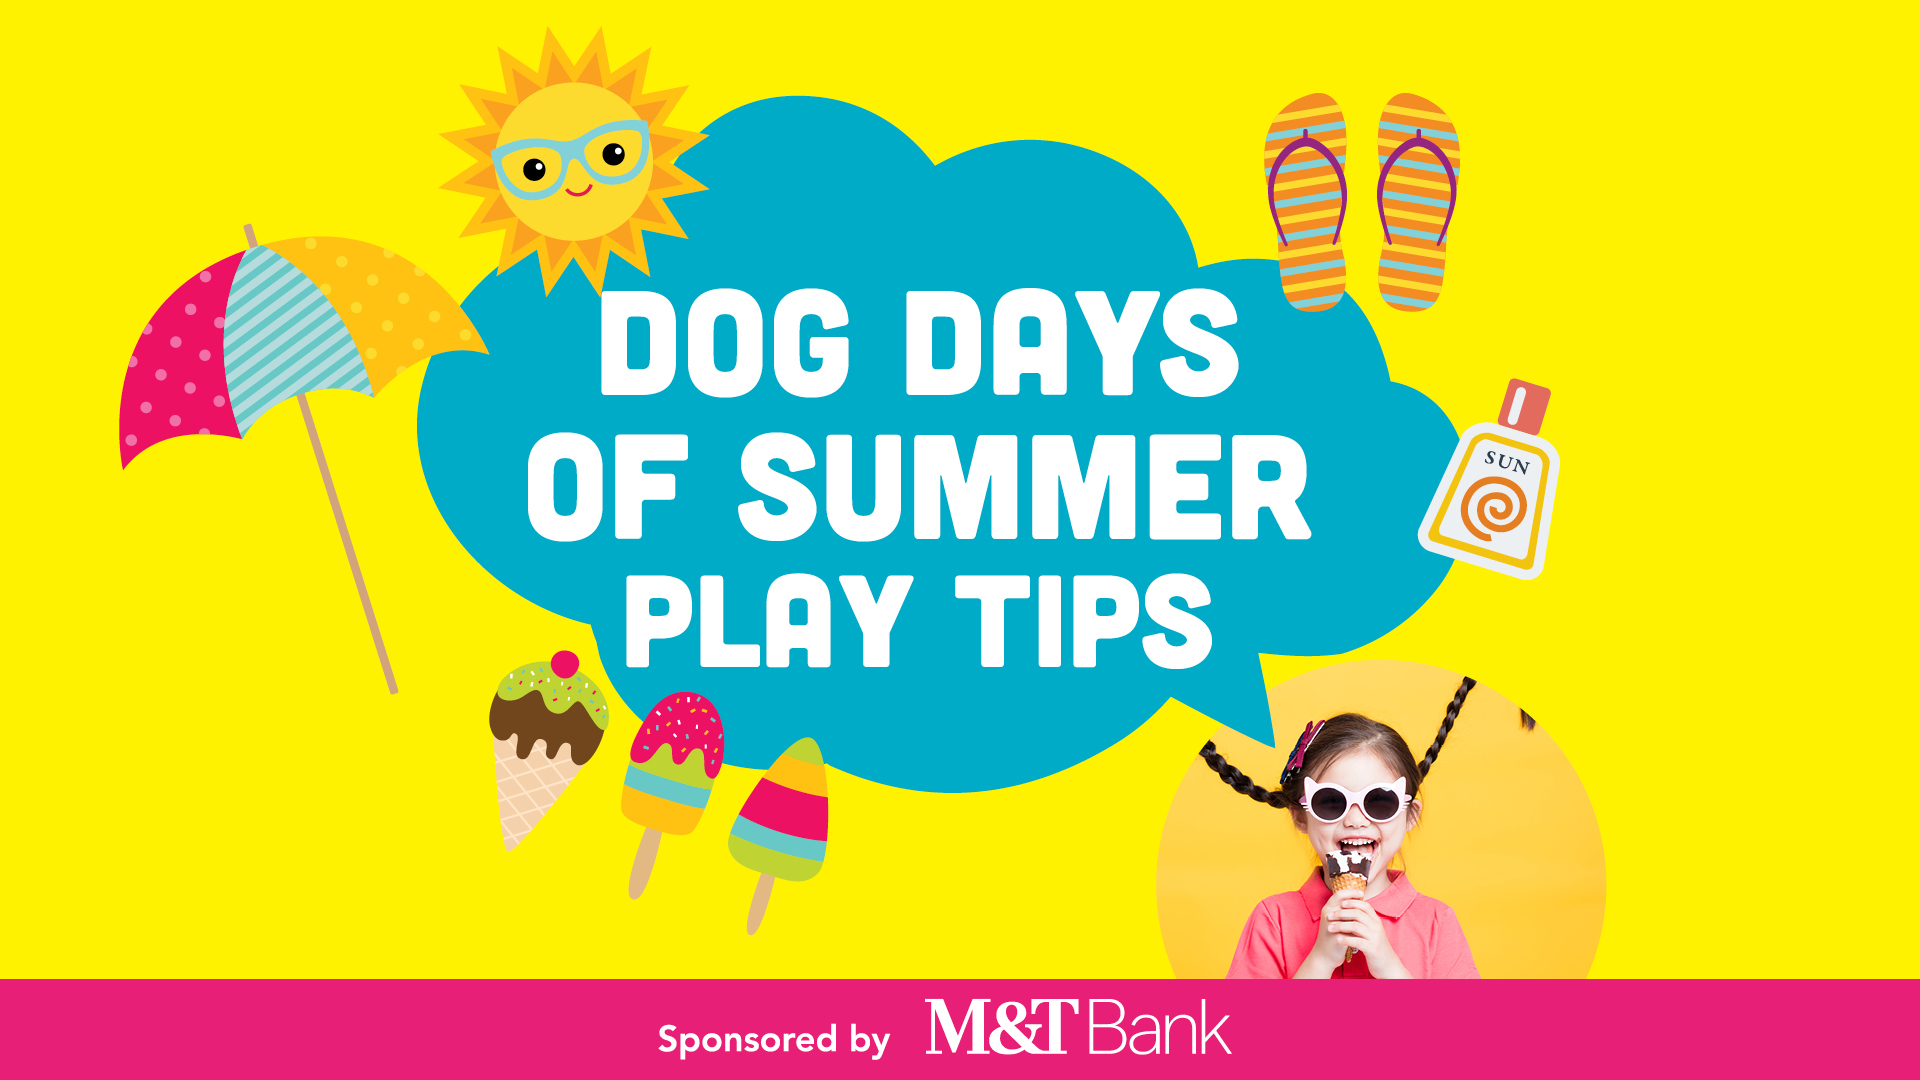 Dog Days of Summer Play Tips